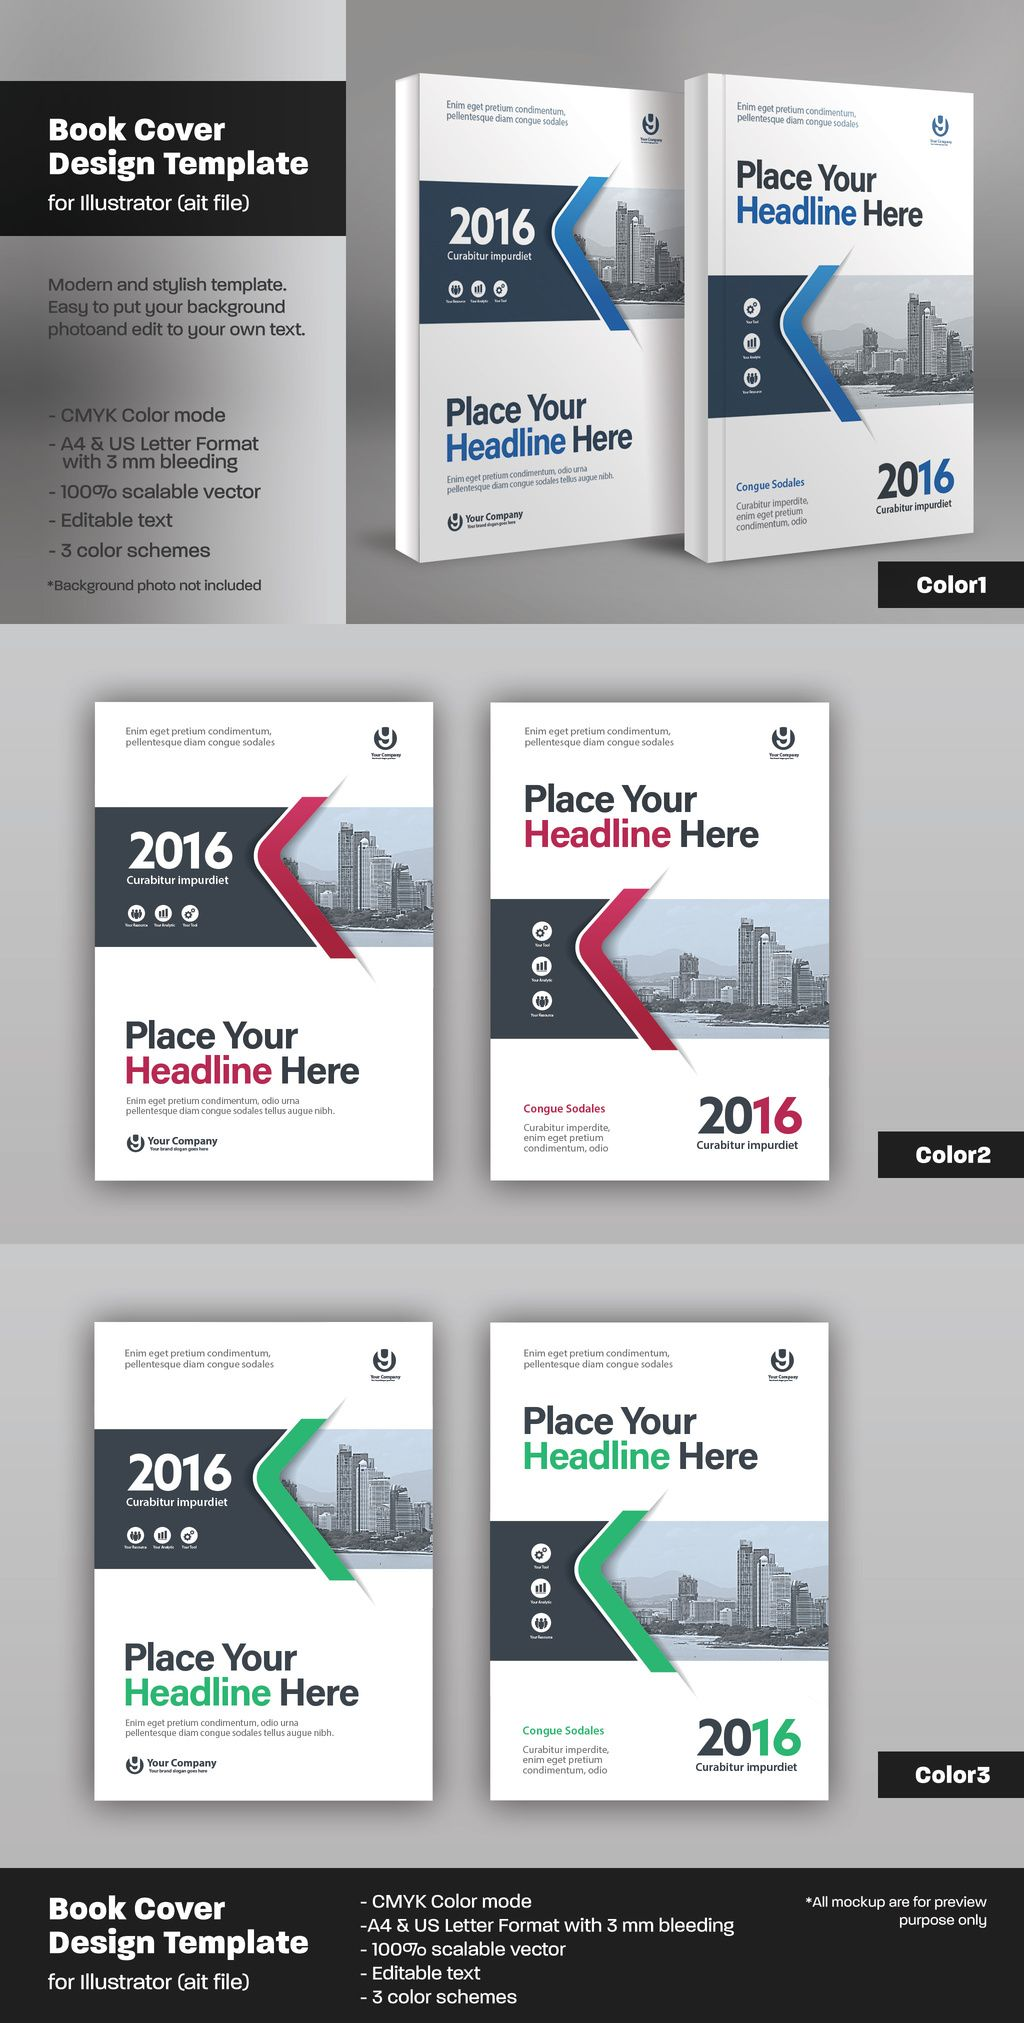 Brochure template stock photos, royalty-free images, vectors, video ...